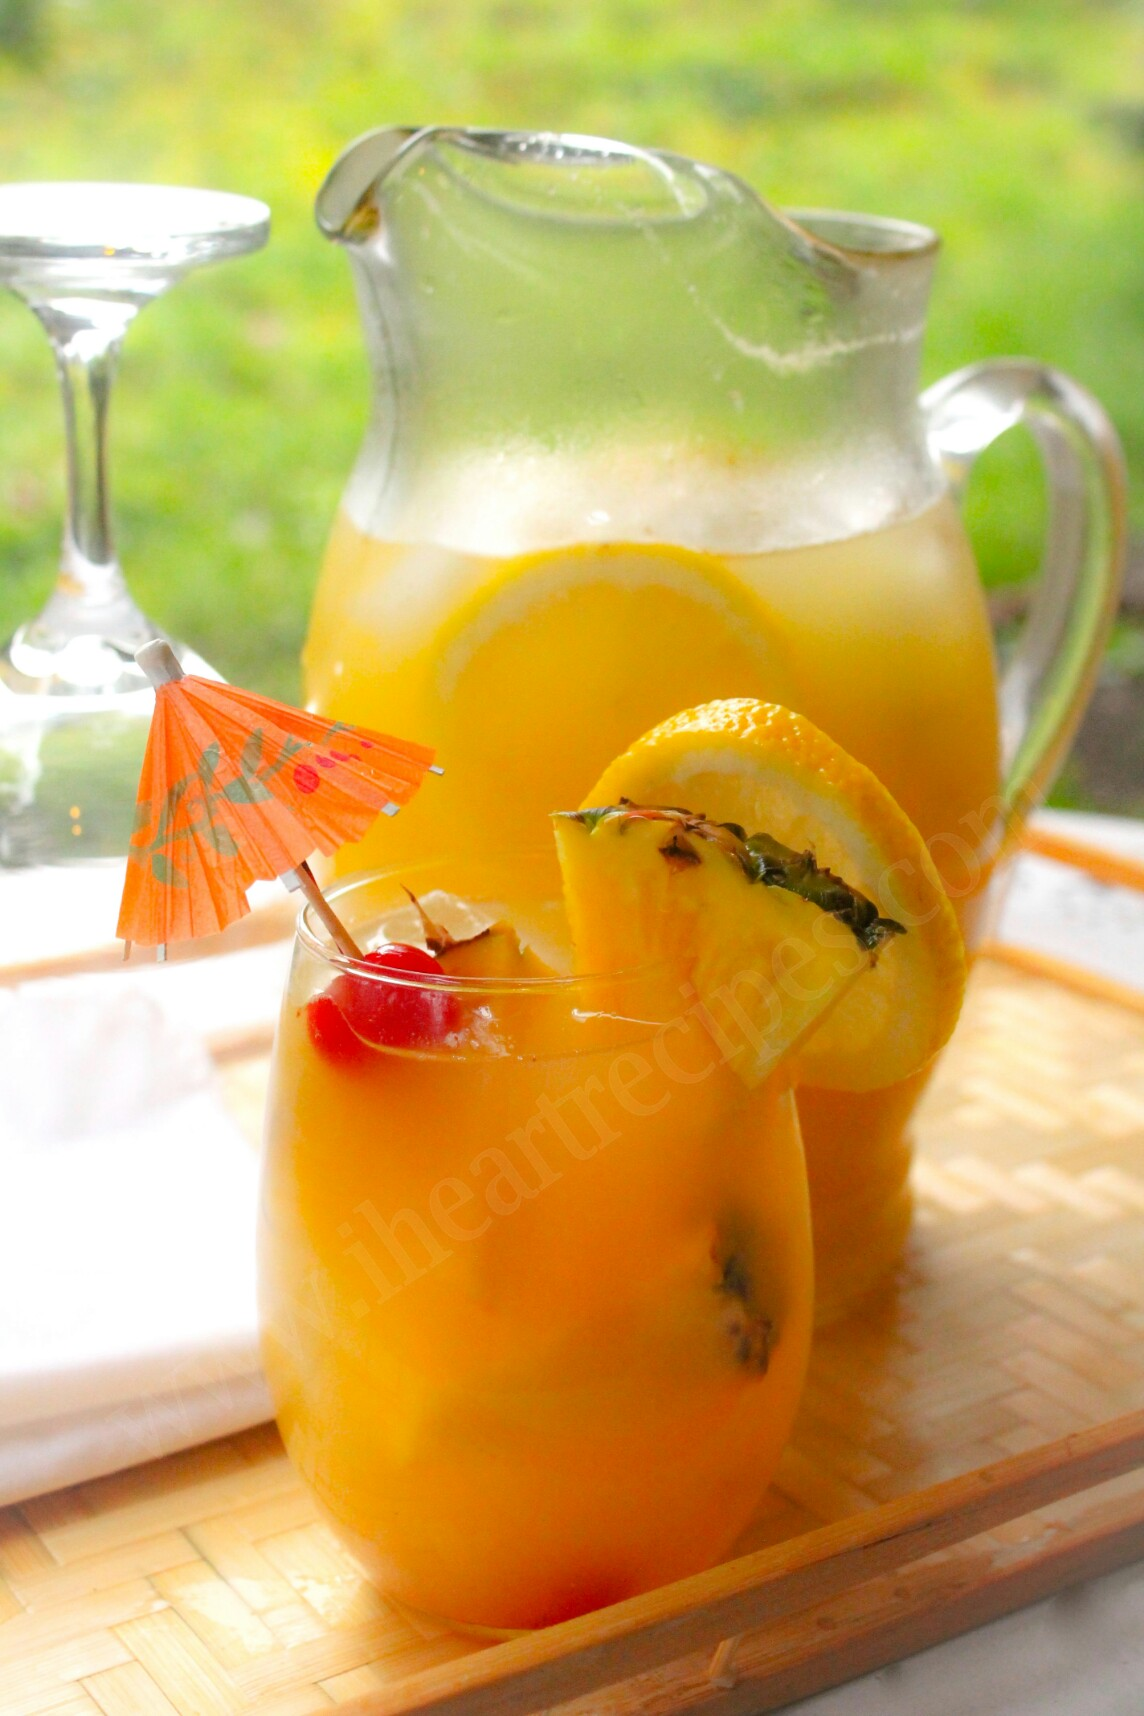 Serve this Fresh Homemade Mango Pineapple Lemonade at your next summertime party.